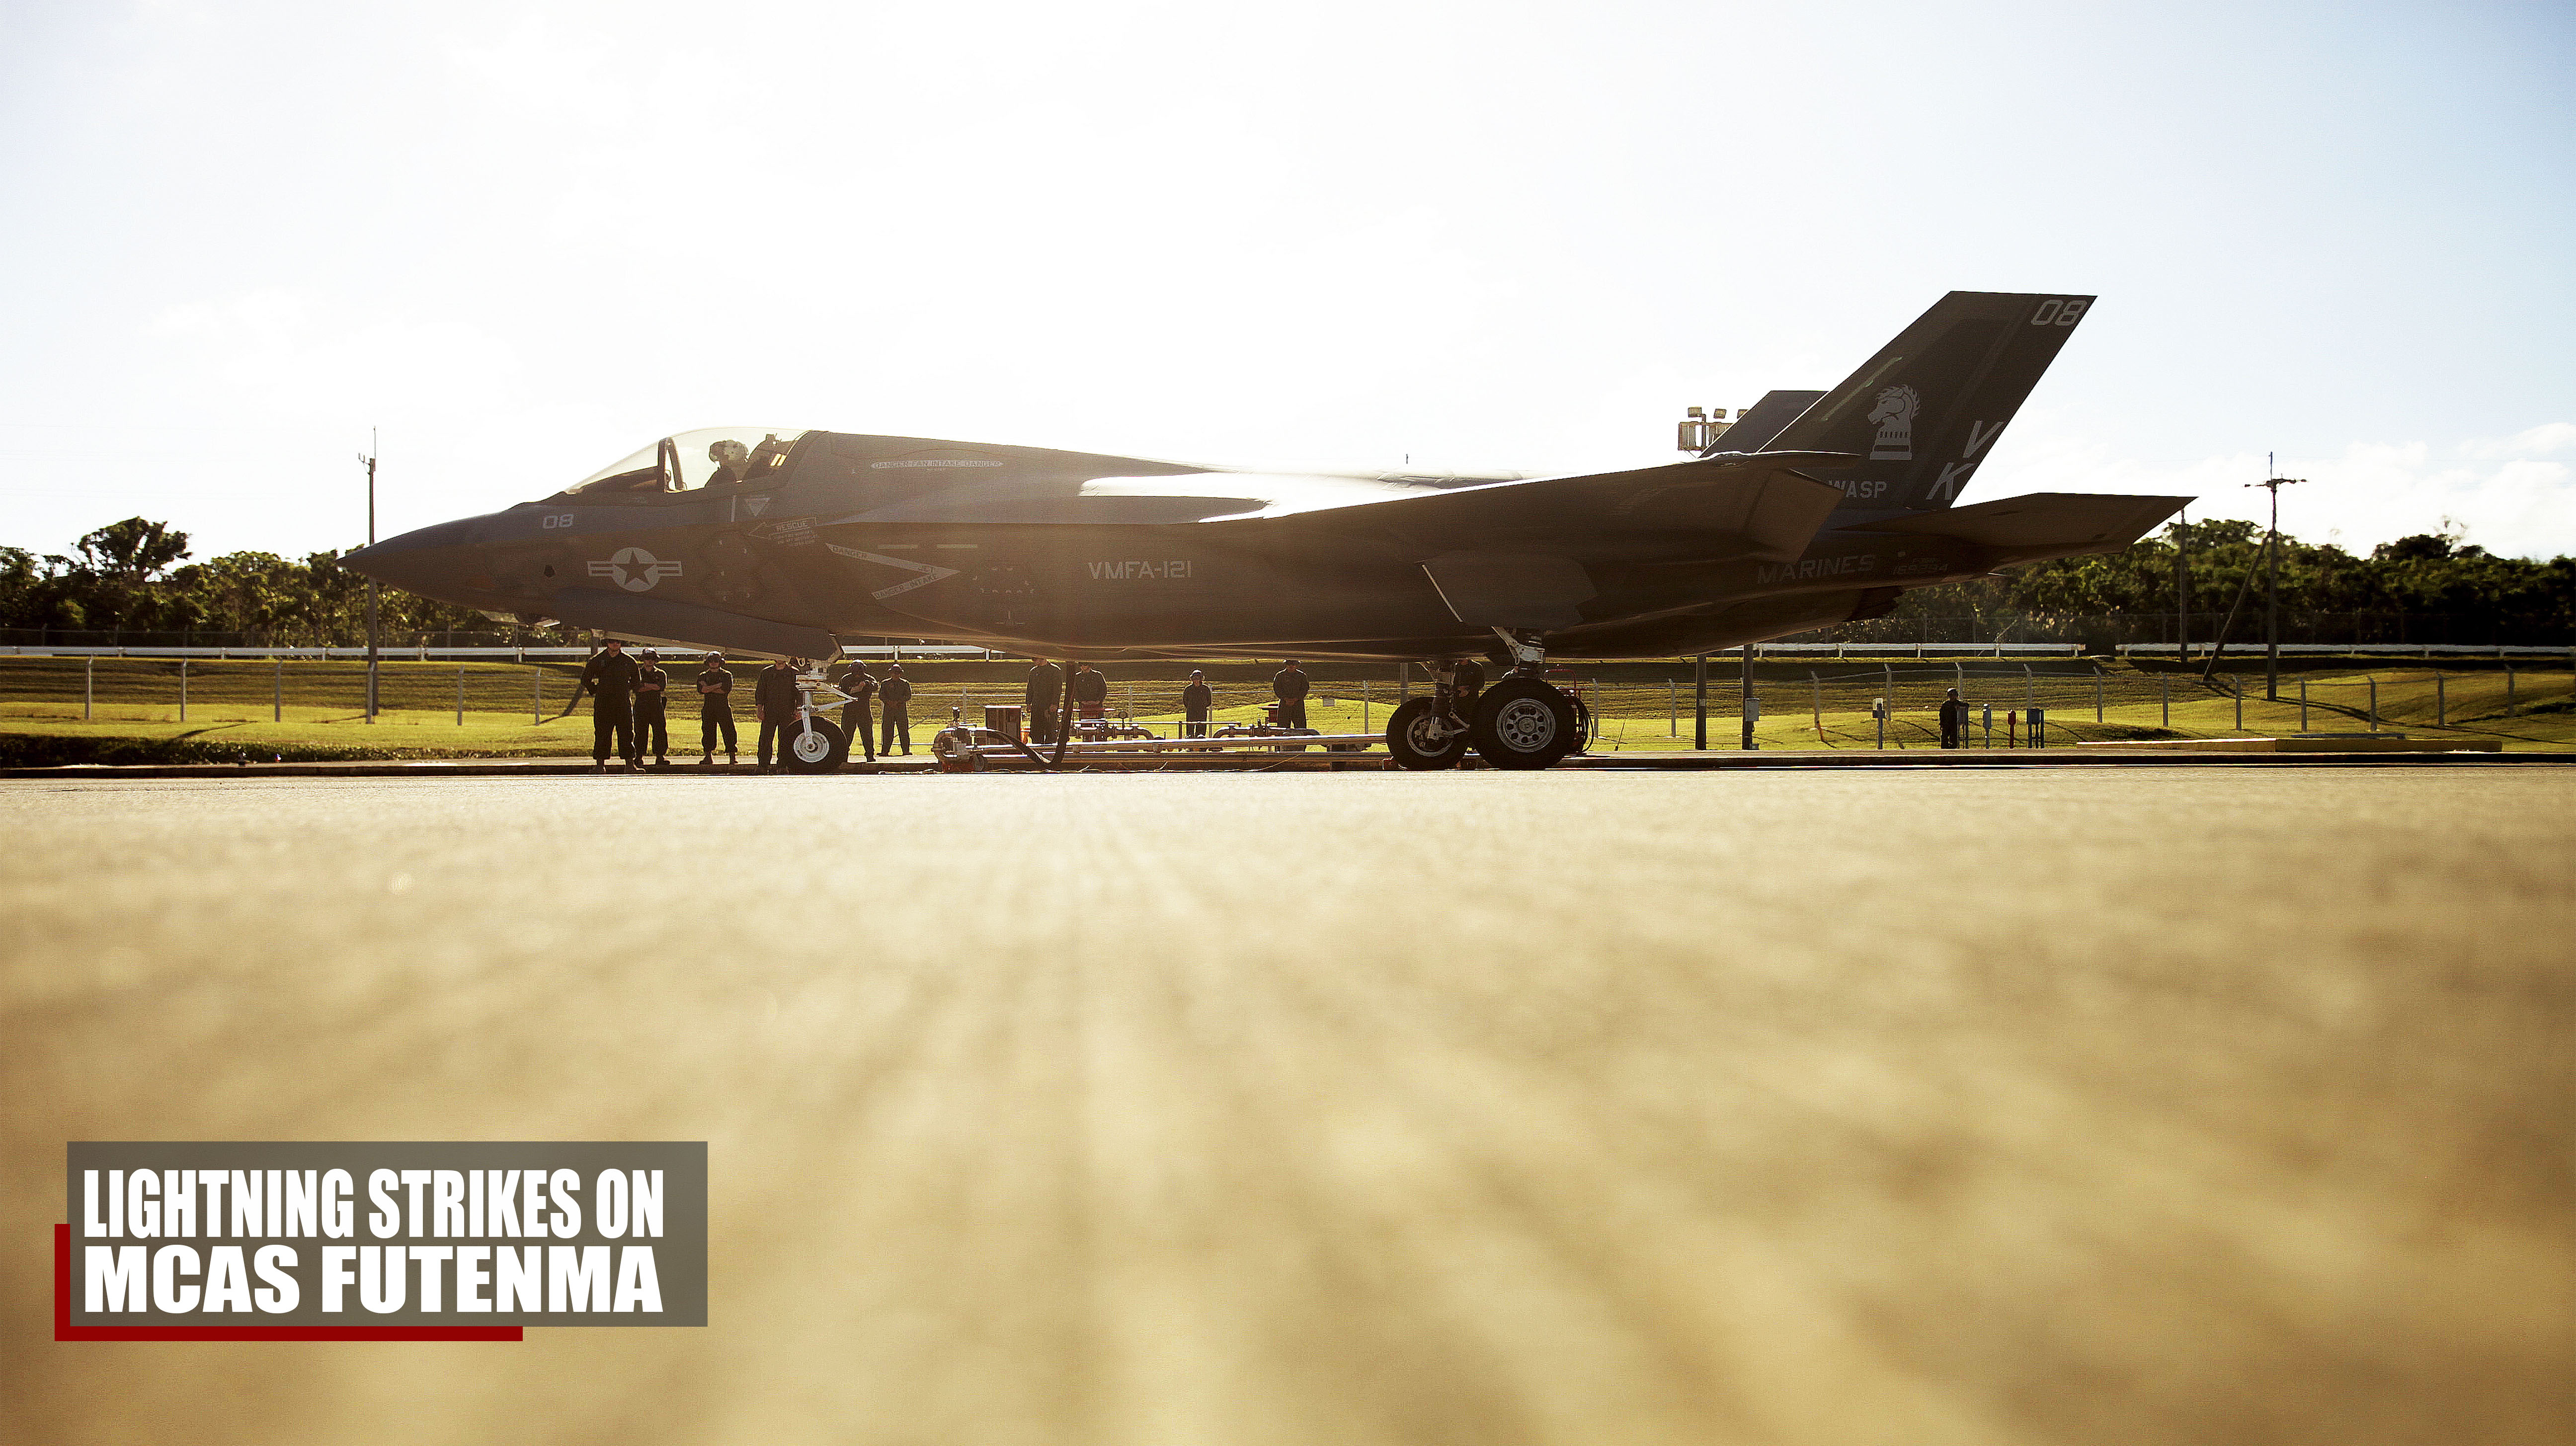 F-35B Lightning II lands at MCAS Futenma for first time